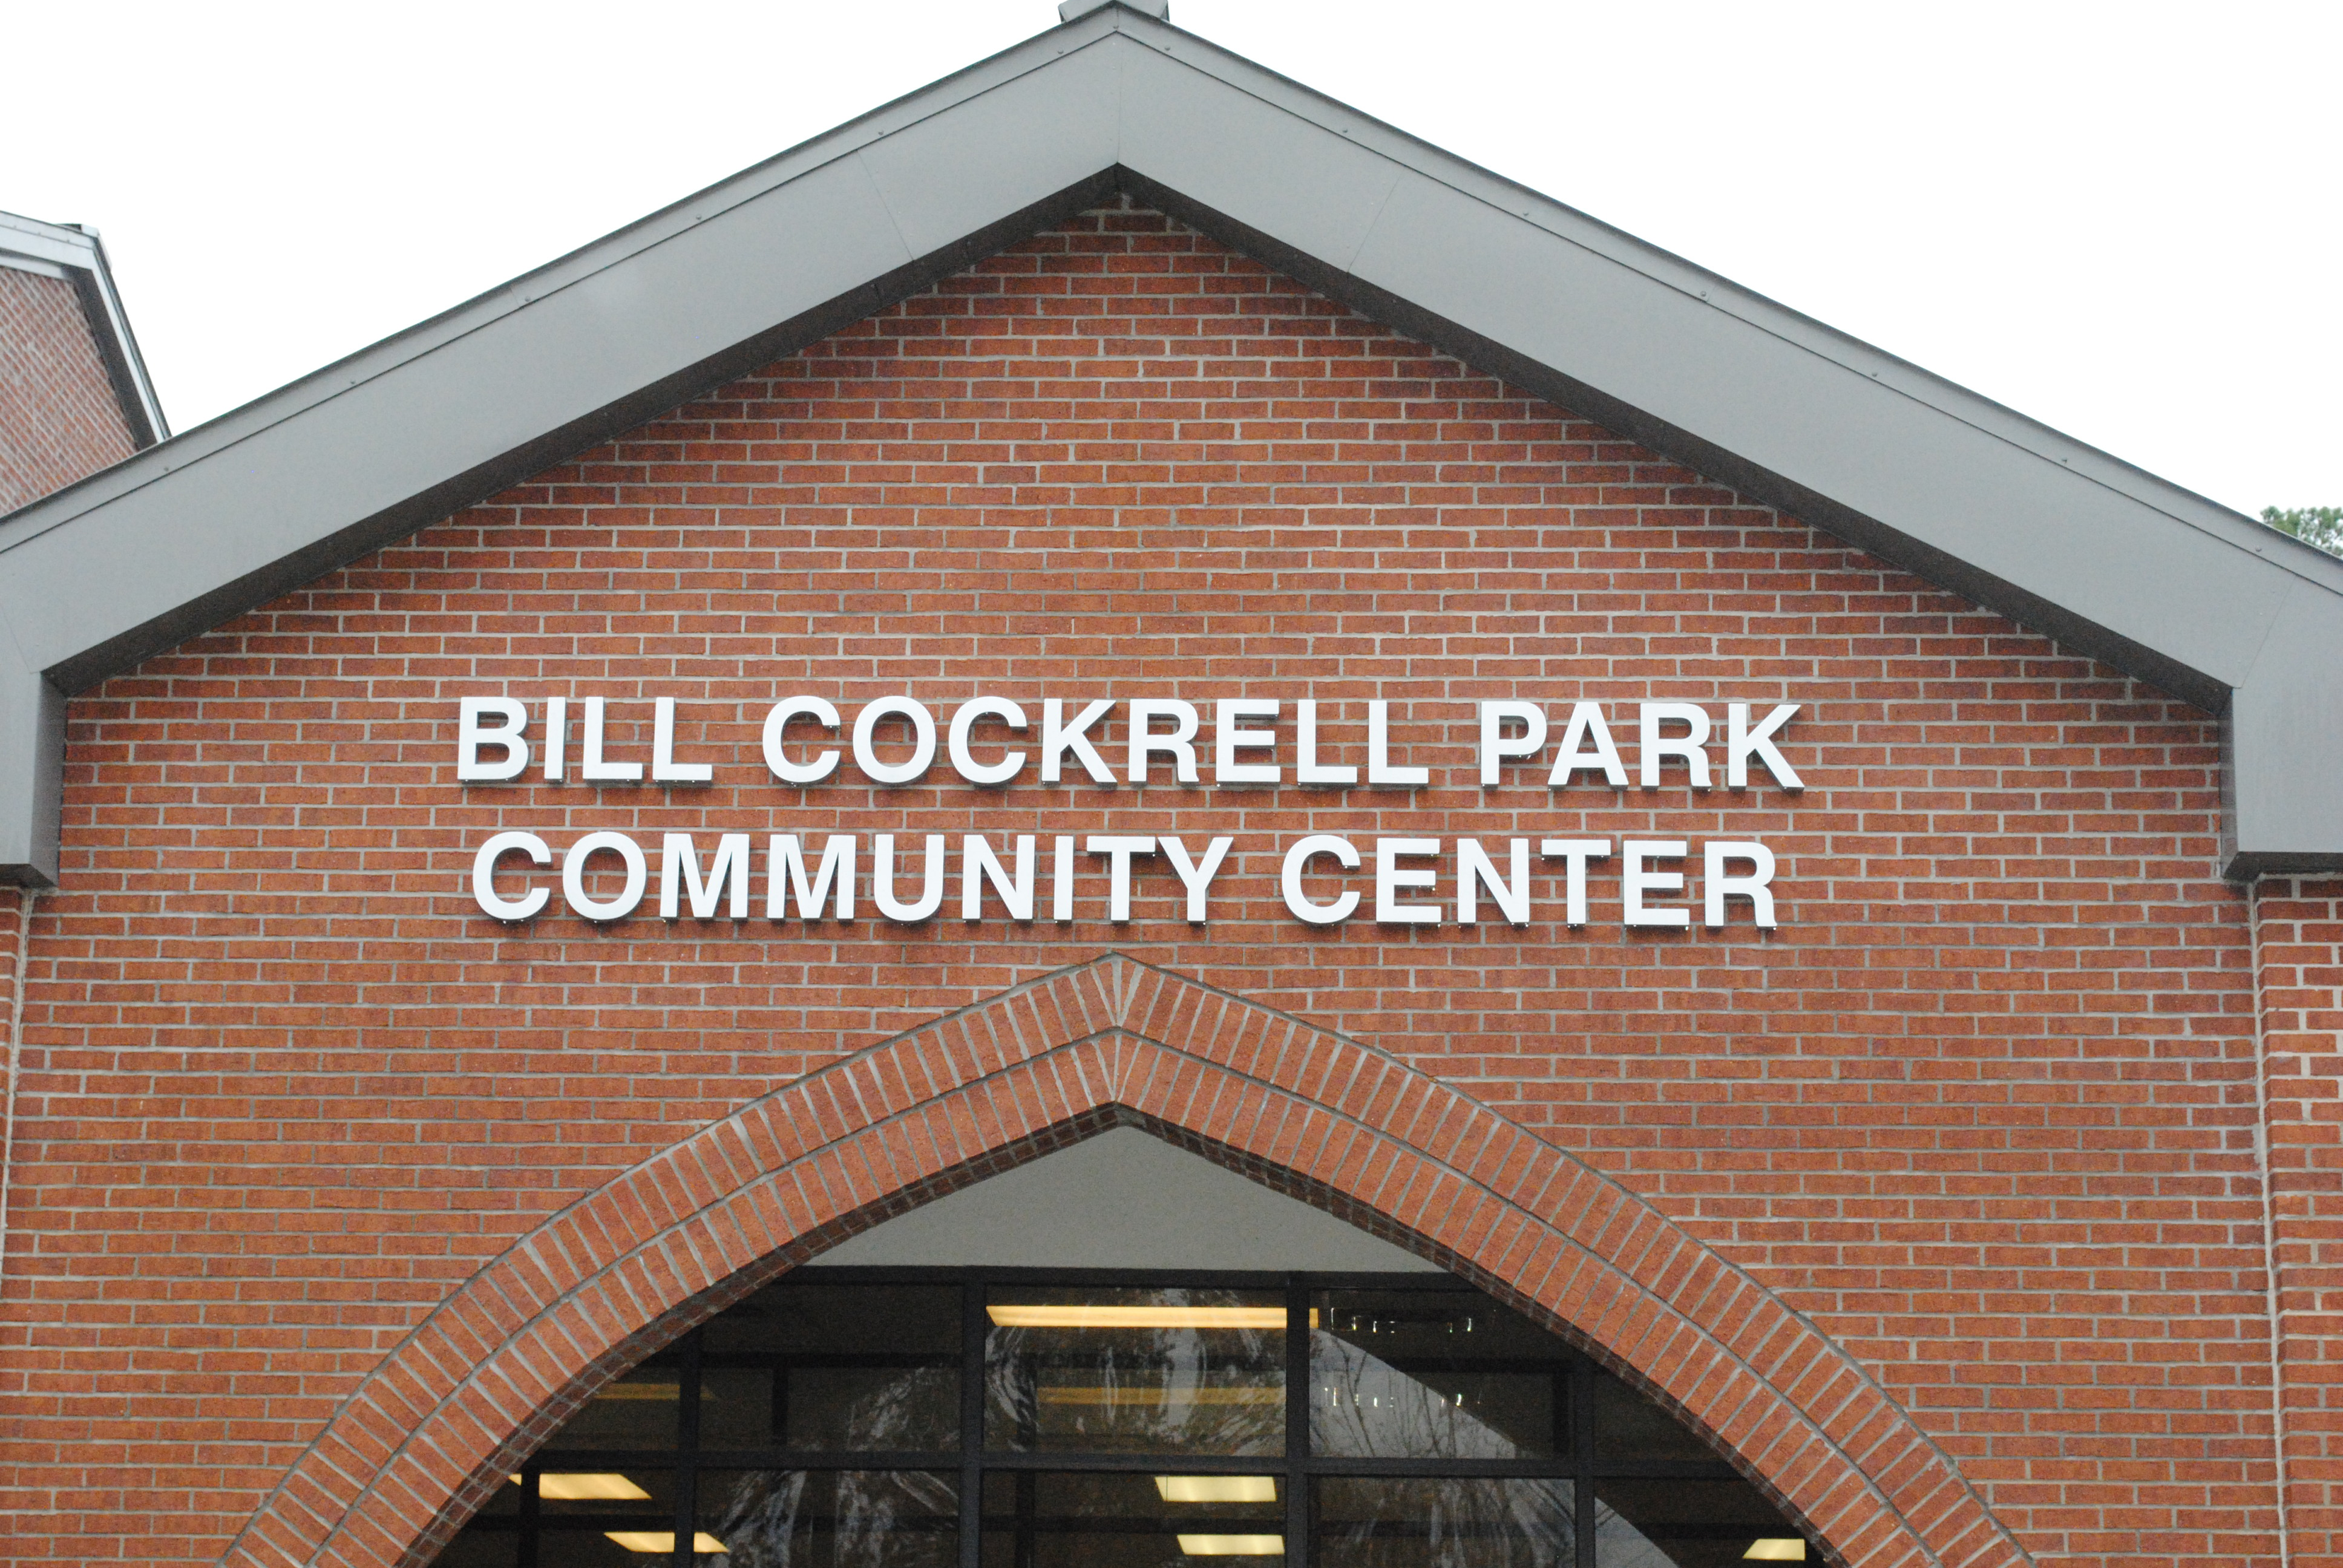 Bill Cockrell Community Center